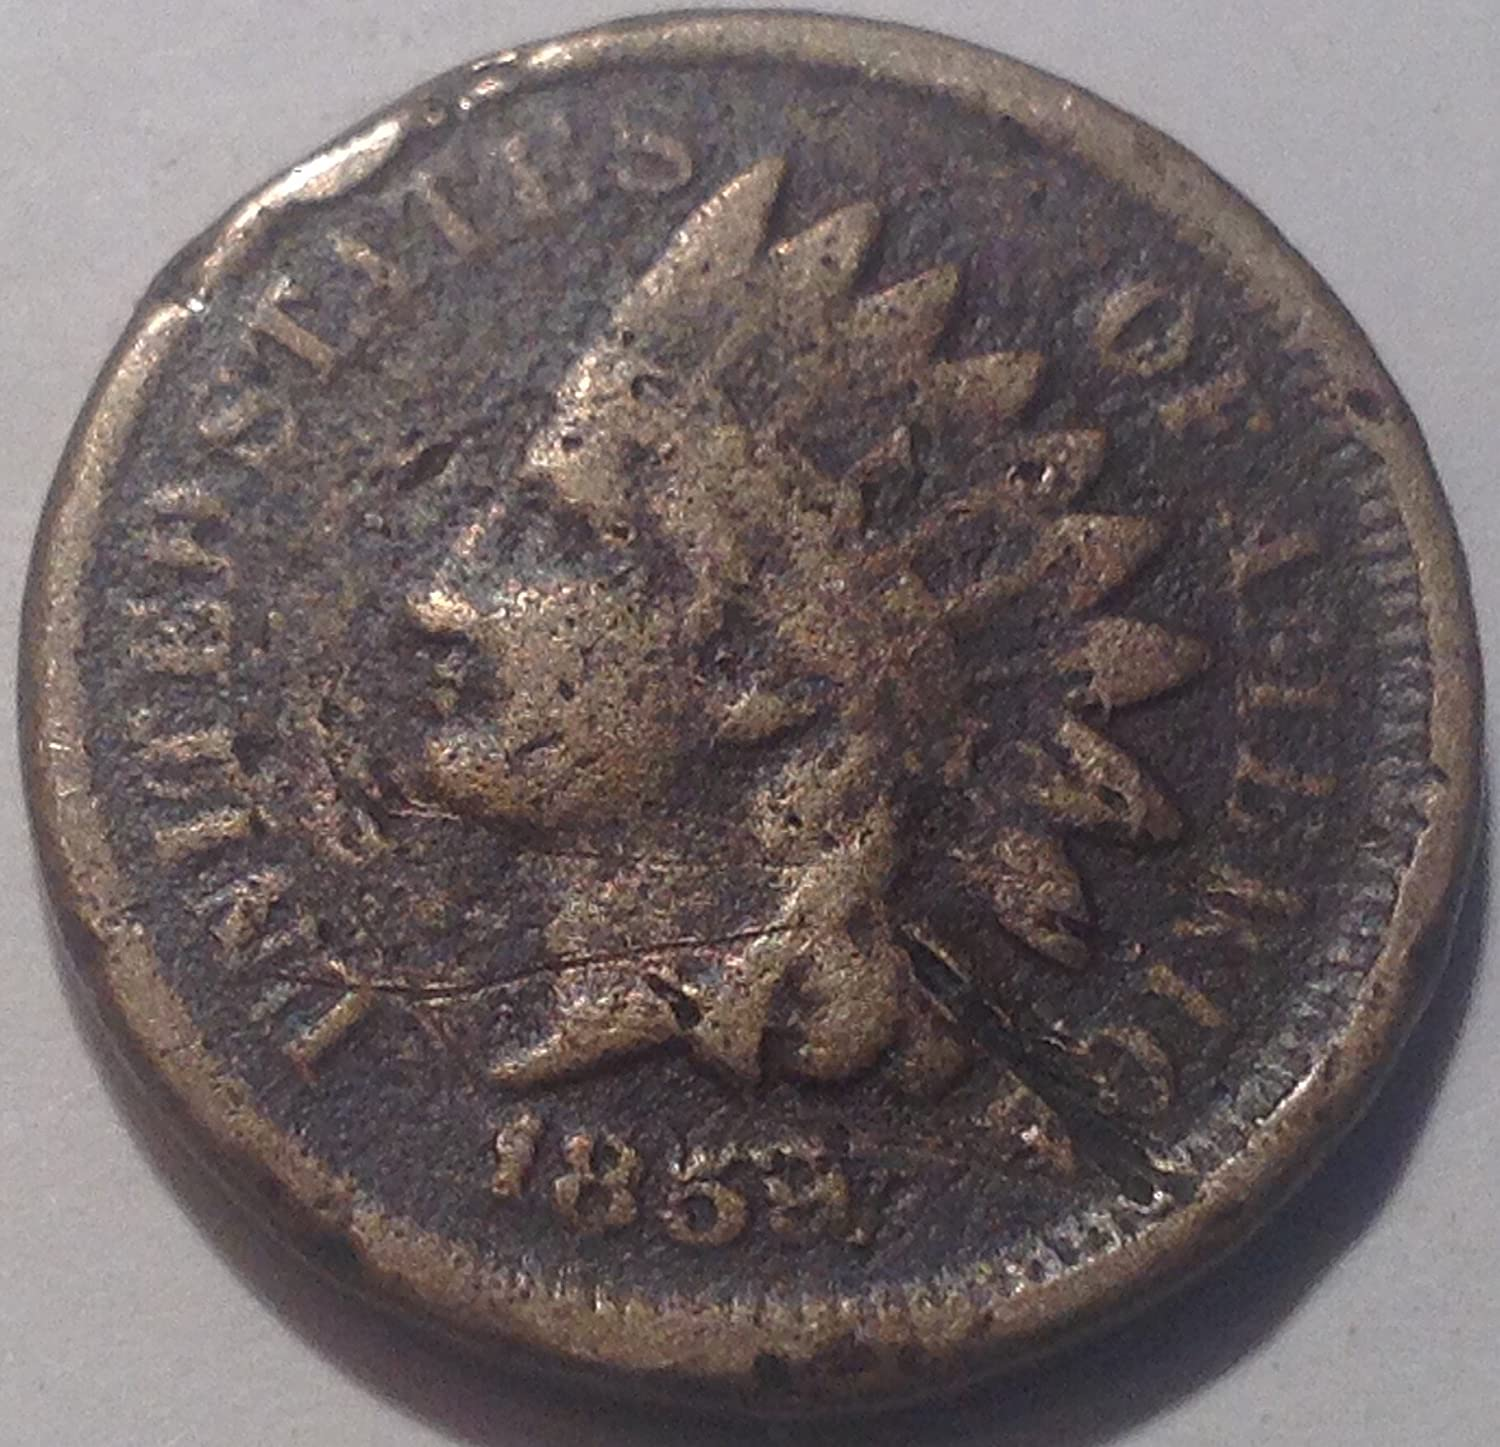 VERY GOOD 95/% COPPER COIN 1909 INDIAN HEAD CENT PENNY CIRCULATED GRADE GOOD